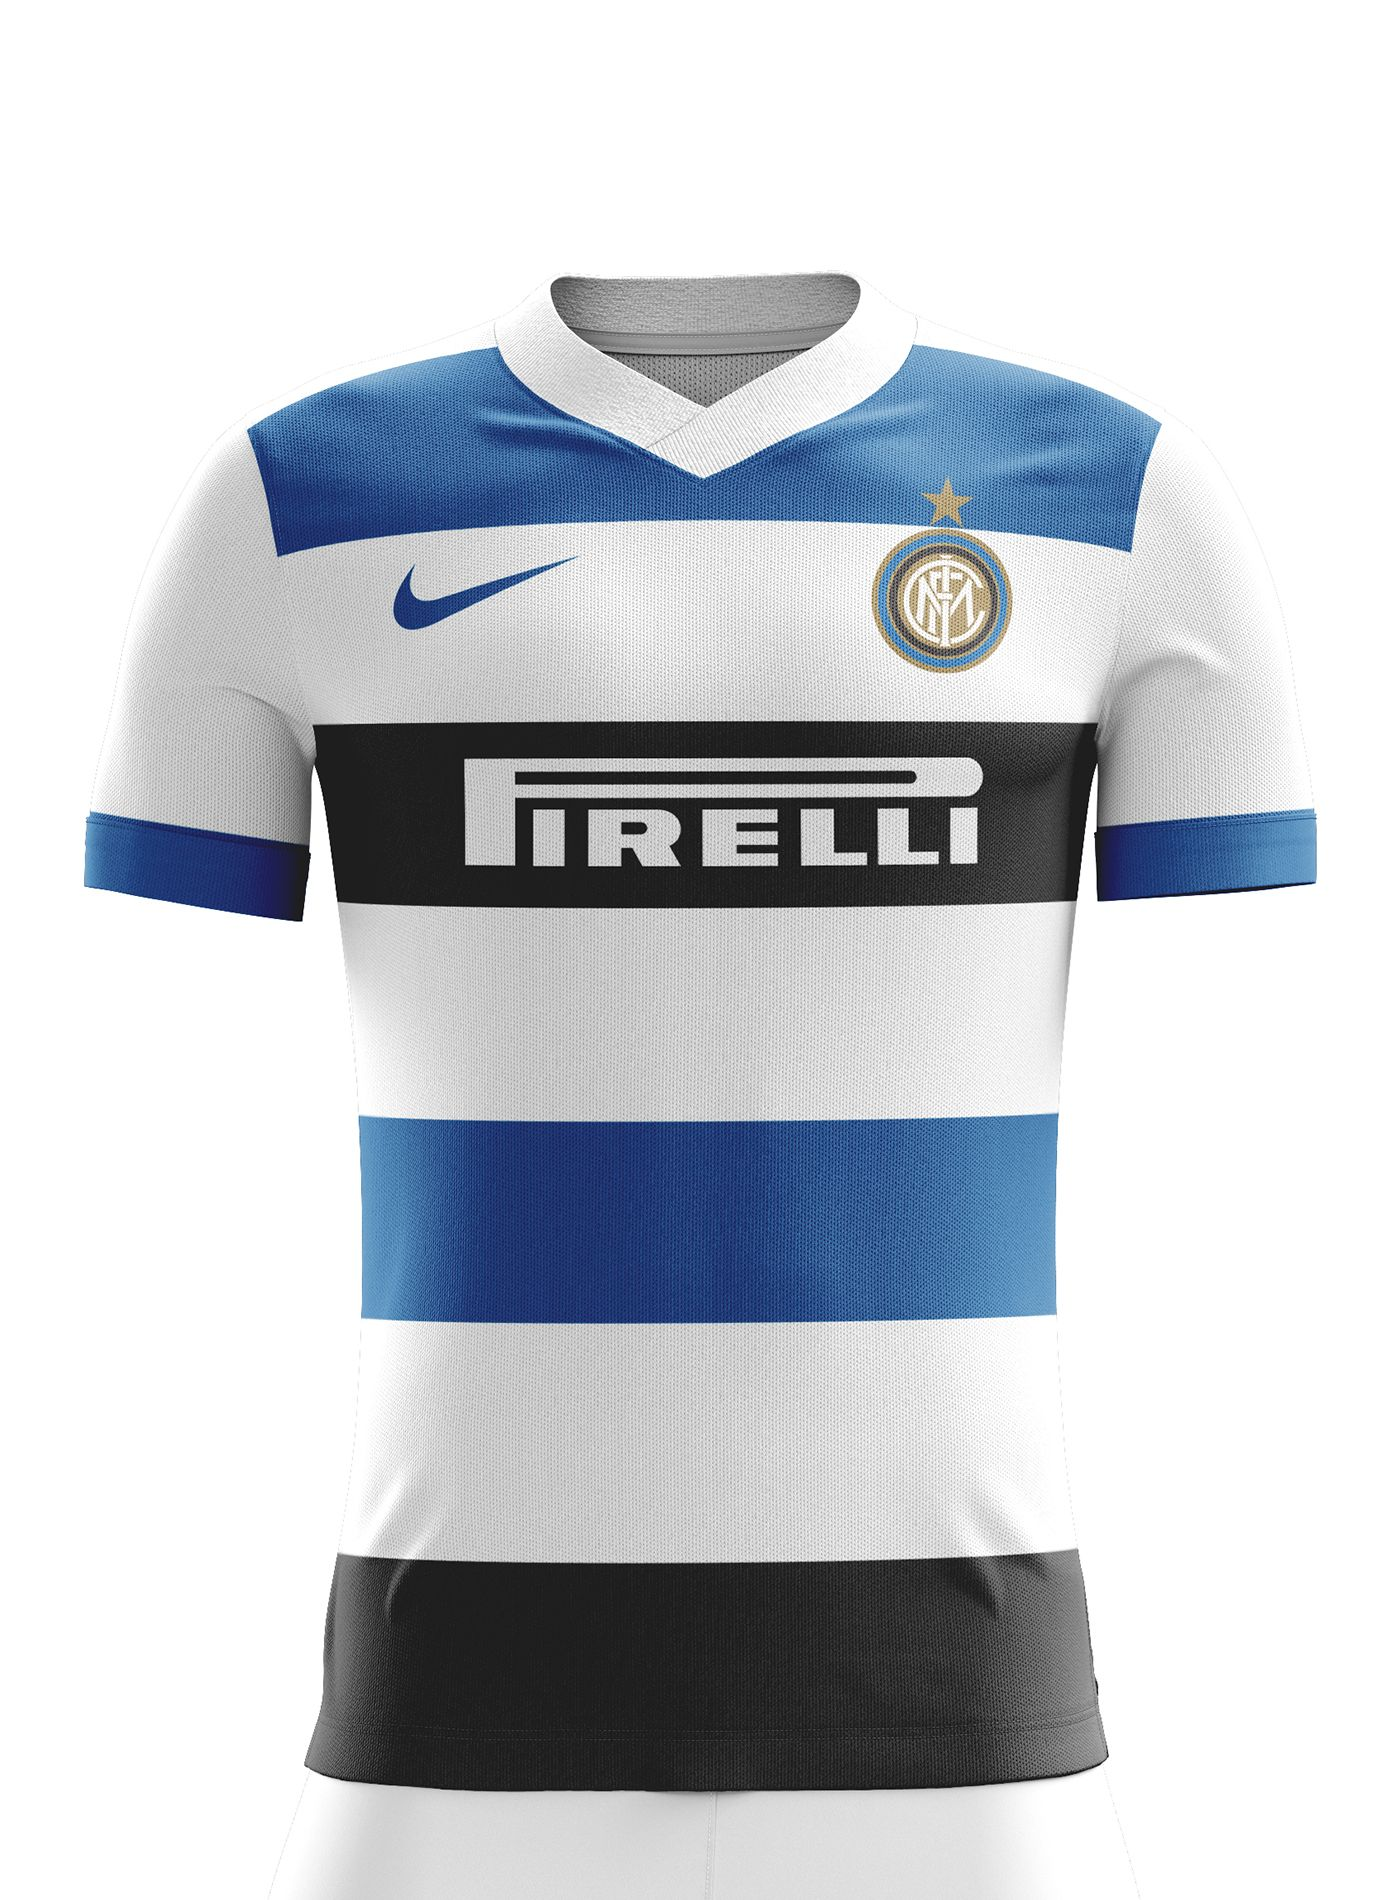 f29593ae22a I designed football kits for FC Internazionale Milano (also know as Inter  Milan) for the upcoming season 17 18.